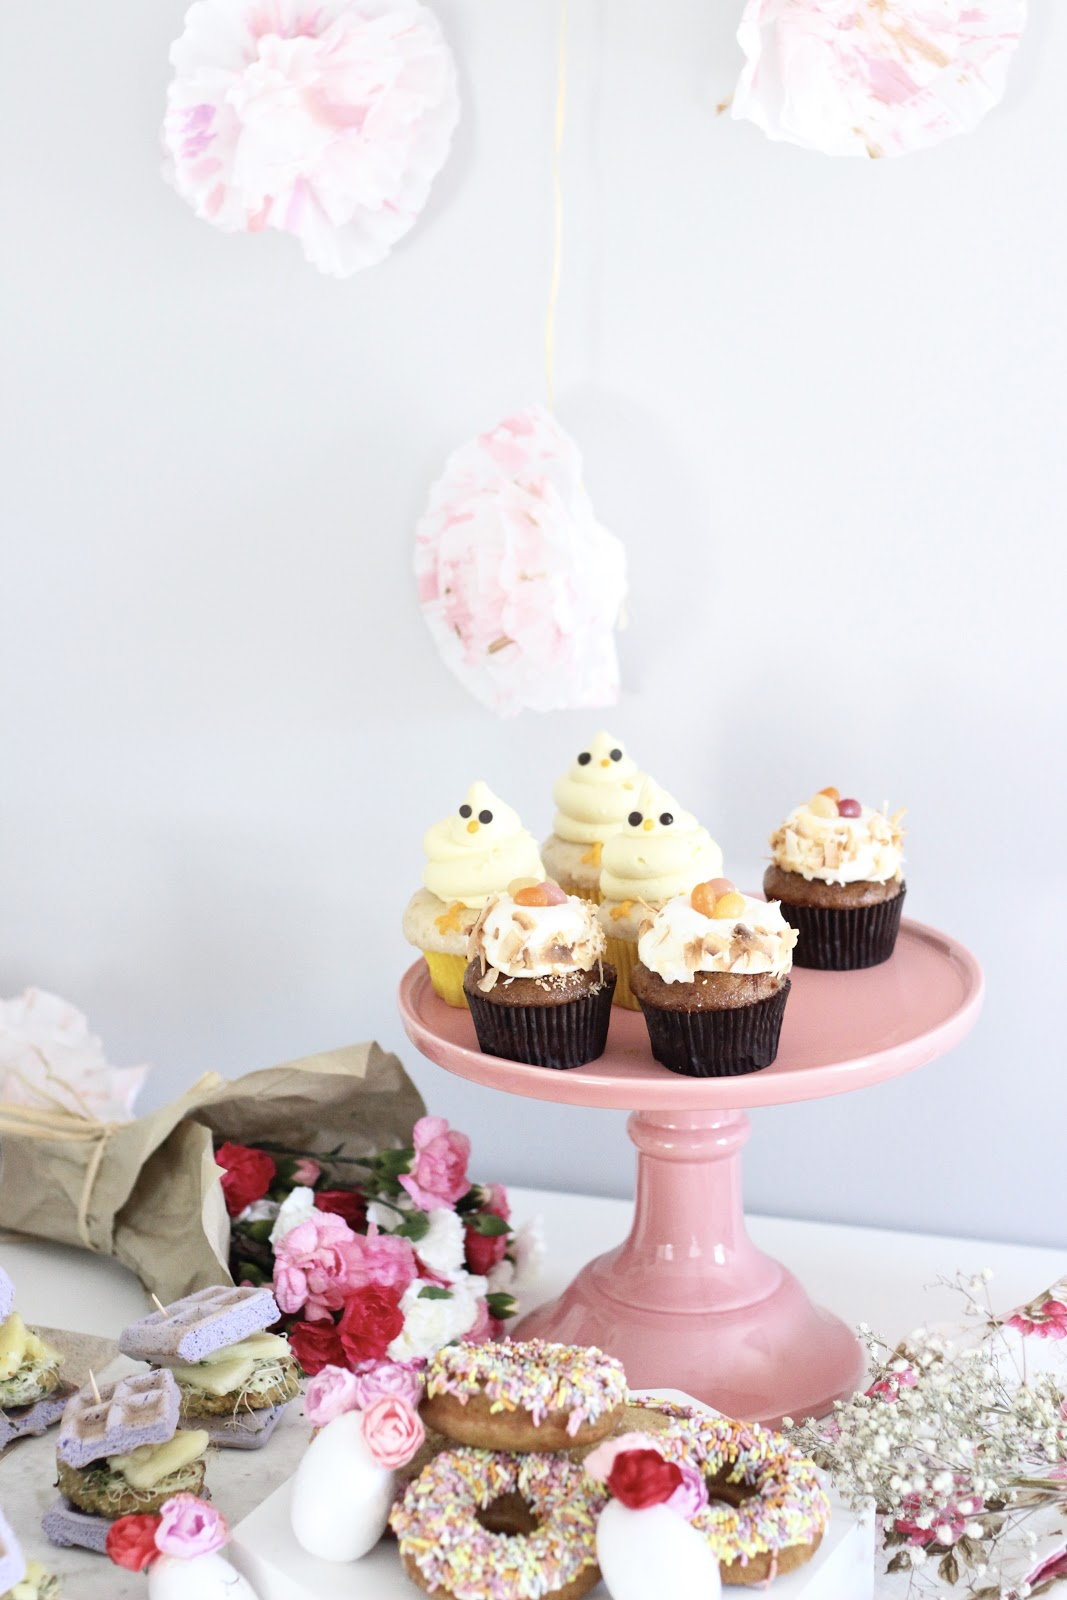 Pastels and Pastries- Easy Easter Entertaining / Easter Table Kelly's Bake Shoppe Sprinkle cookies & donuts/ The Burger Pawty Dream Burger / The Fix + Co plant based Platter